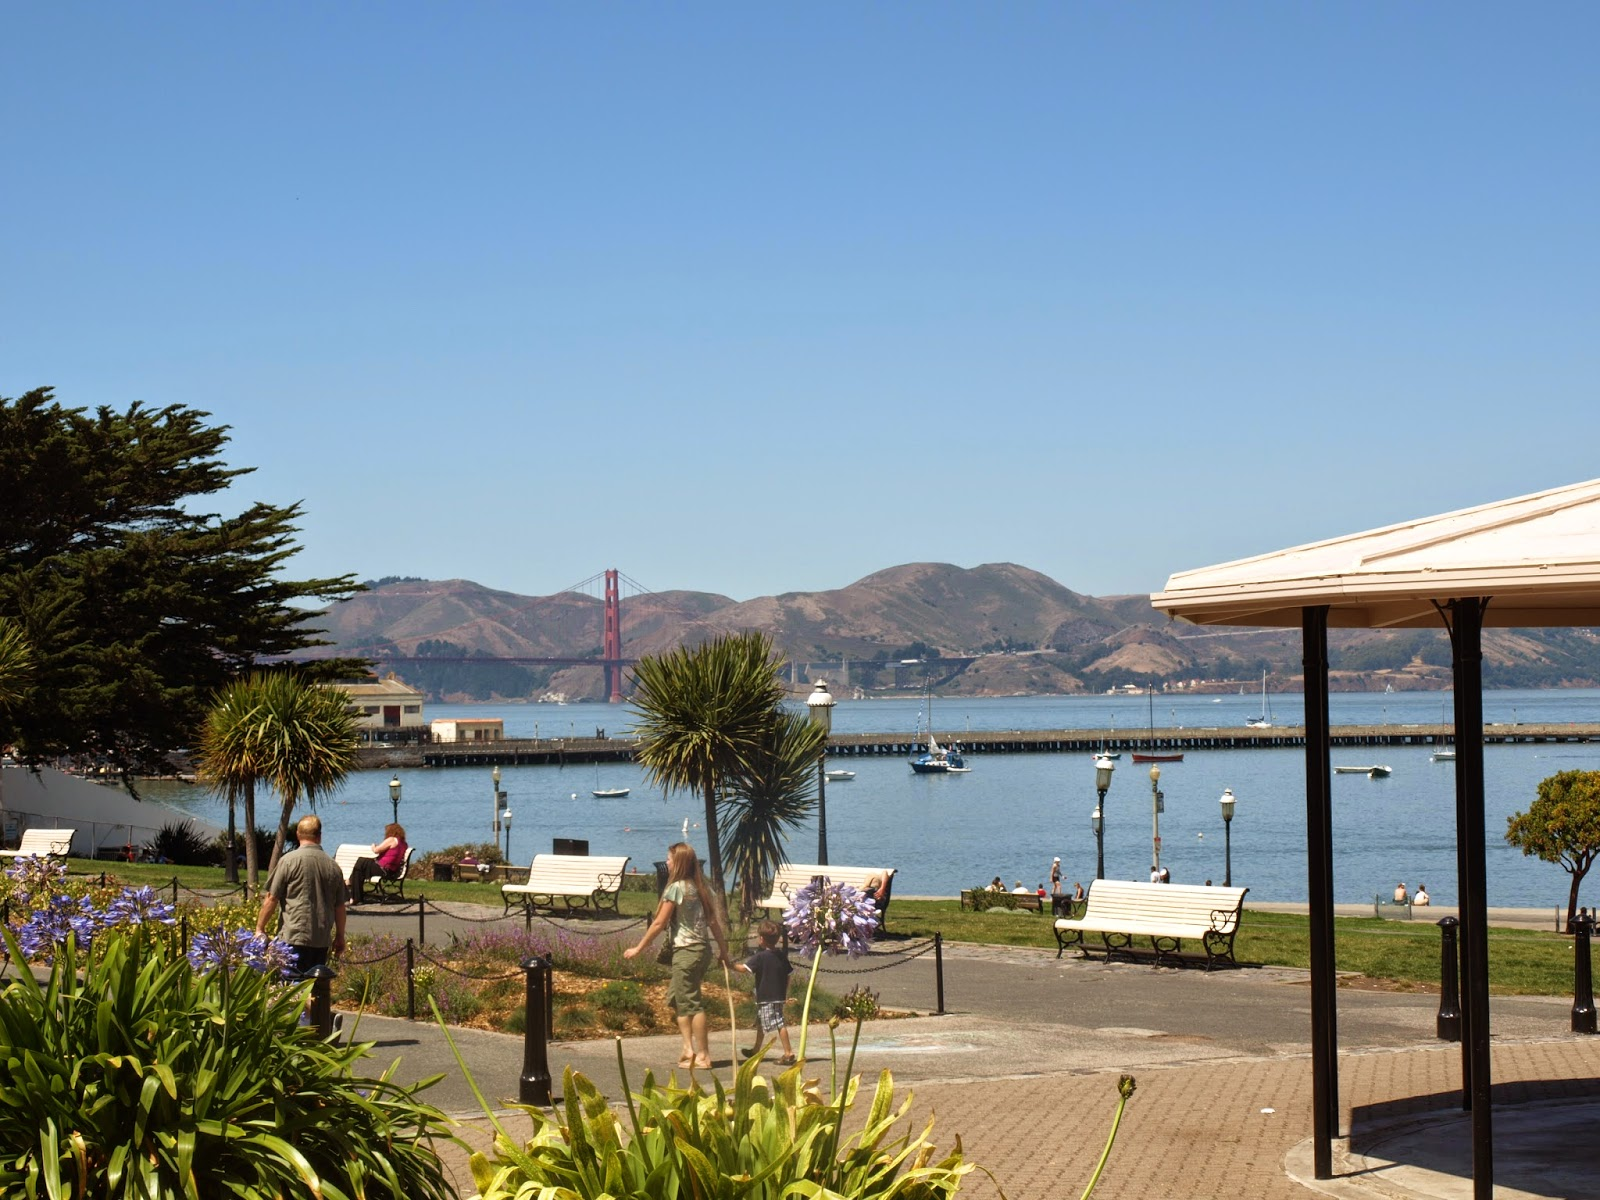 View of Golden Gate from the Marina Green